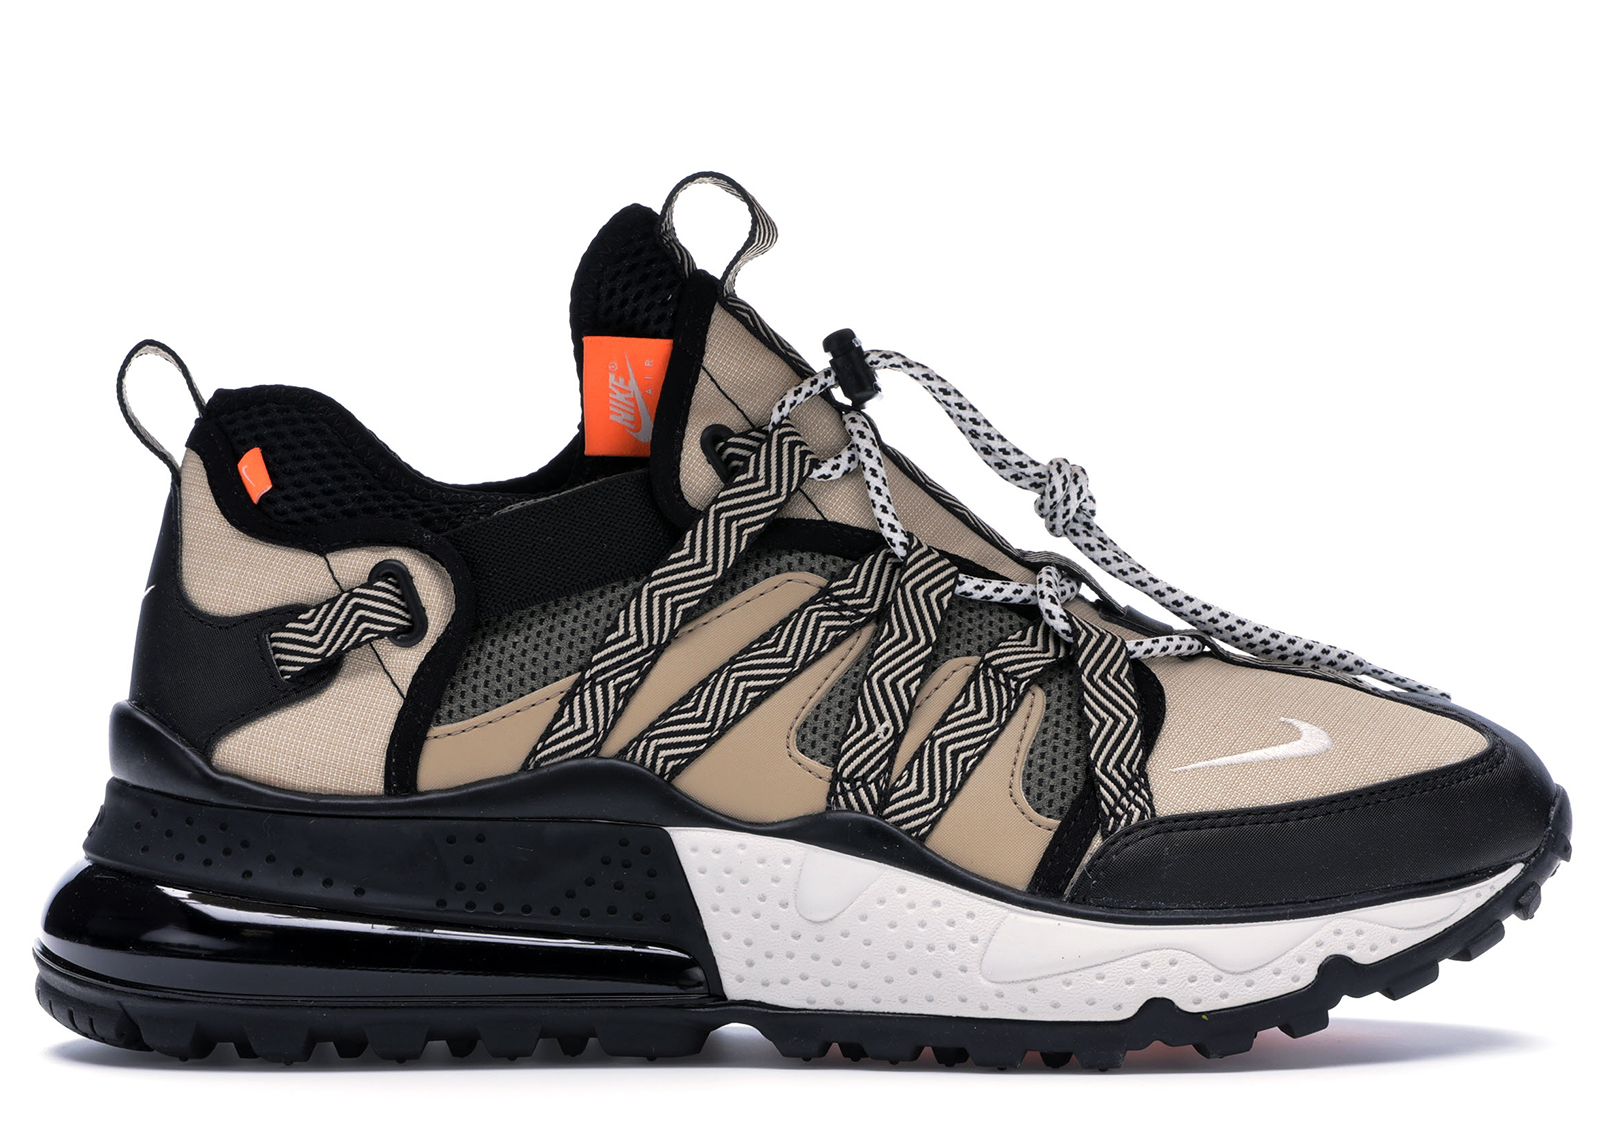 Air Max 270 Bowfin Black Desert